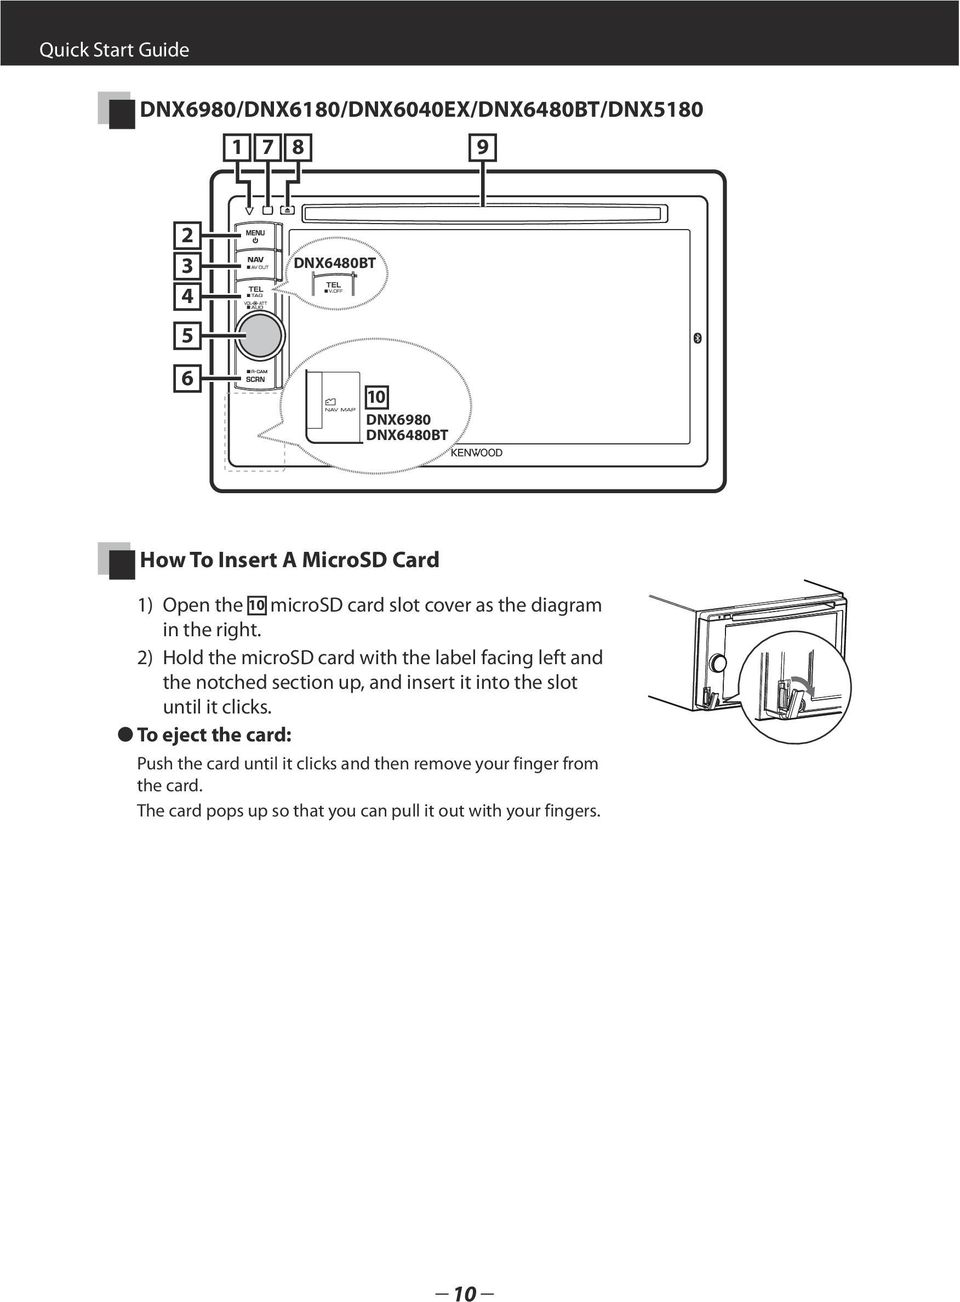 2) Hold the microsd card with the label facing left and the notched section up, and insert it into the slot until it